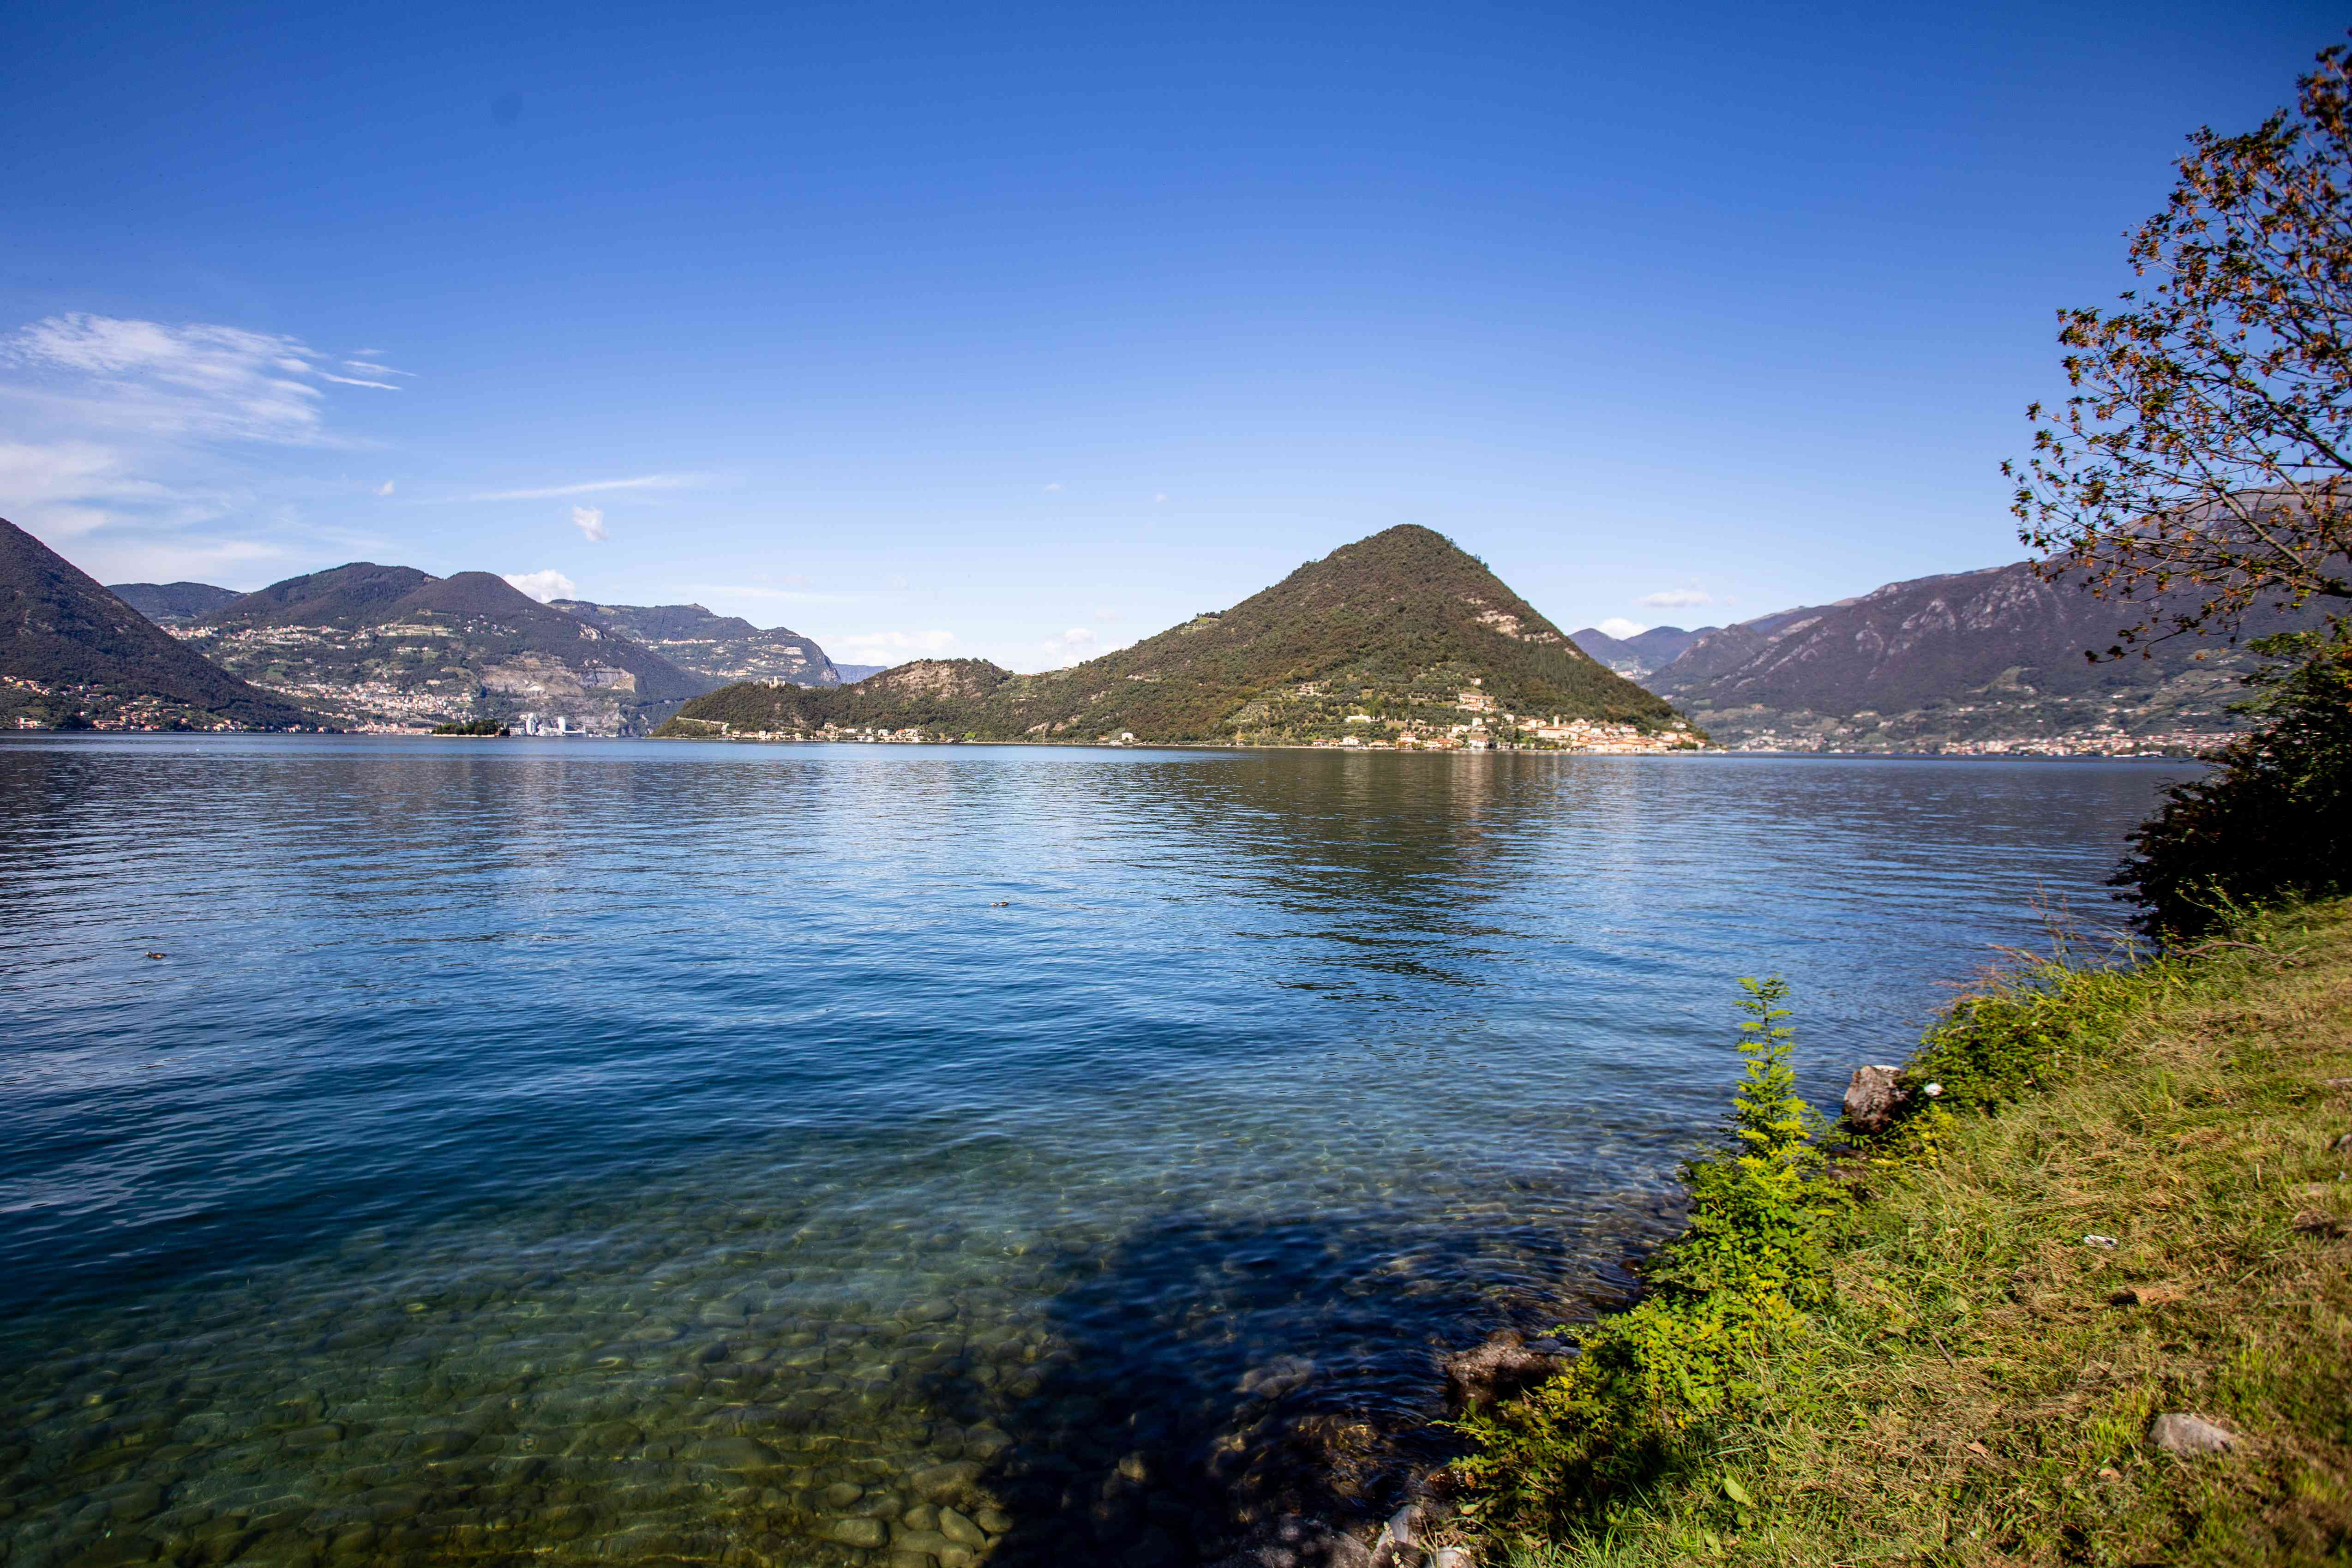 Lake Iseo in Franciacorta, Italy